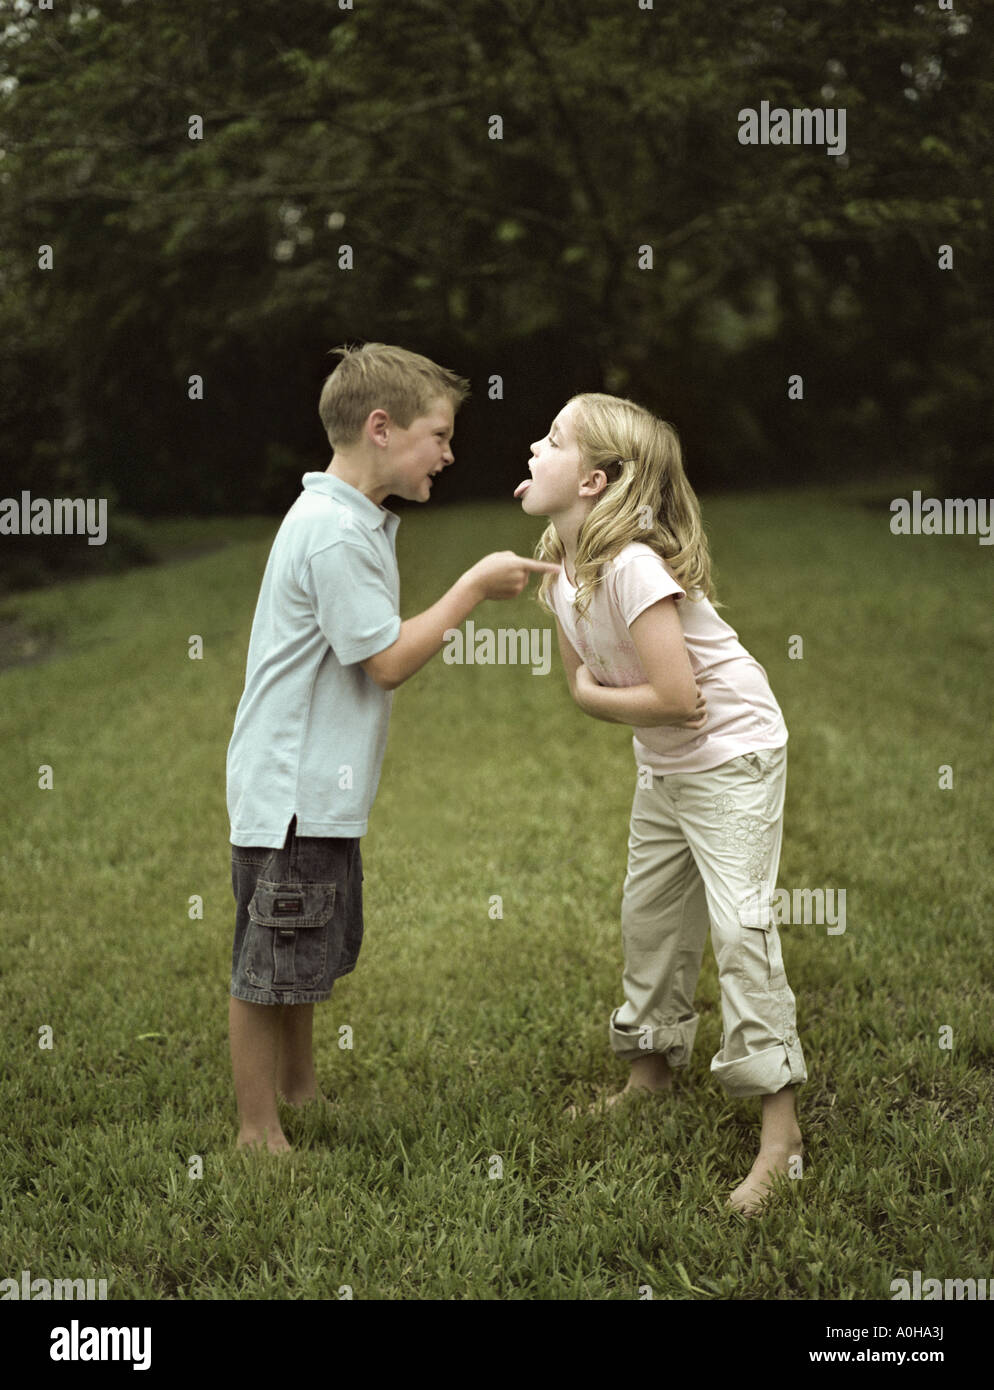 Boy And Girl Bedroom Decor: Siblings Argue Stock Photos & Siblings Argue Stock Images